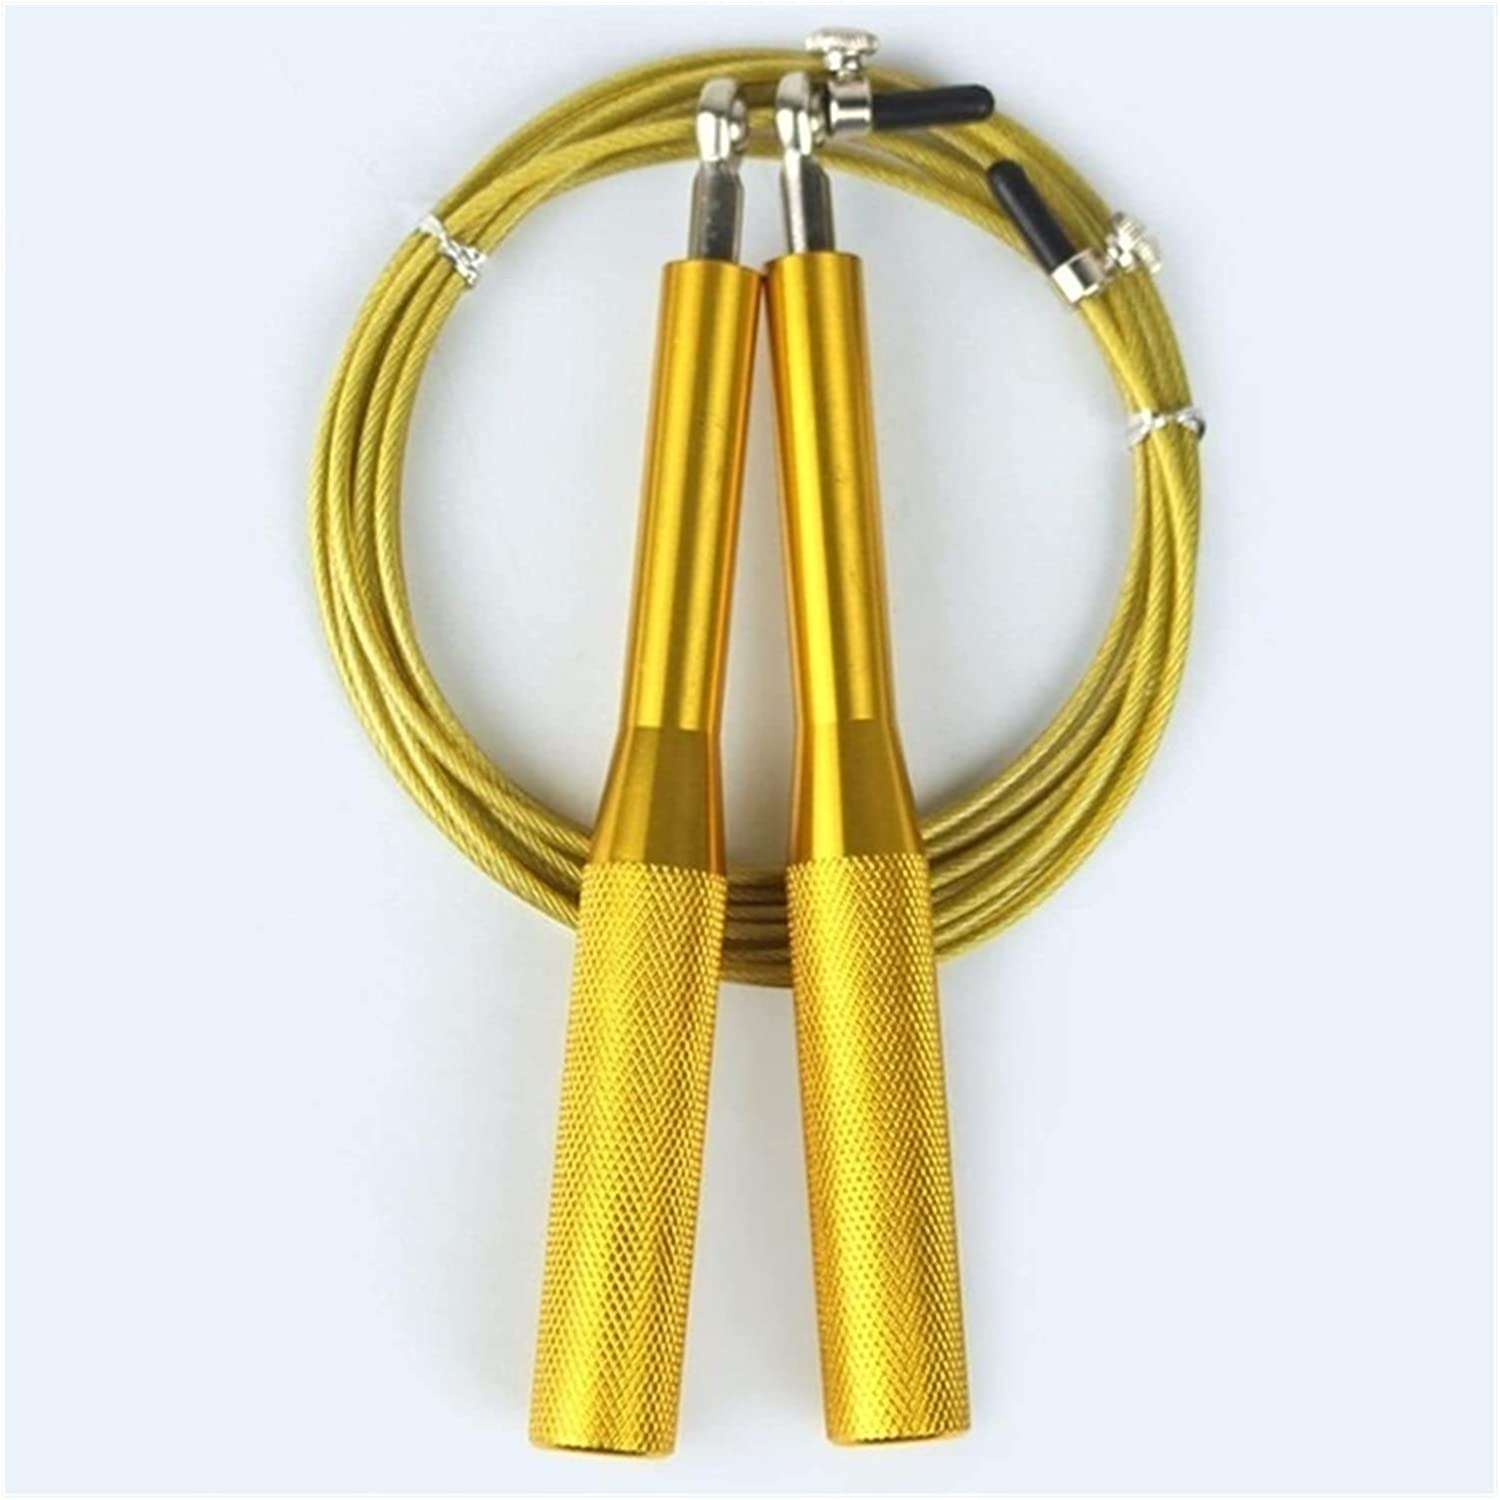 Jump Rope 1pcs Speed trust Fitness Exercise A Skipping Ropes Max 87% OFF